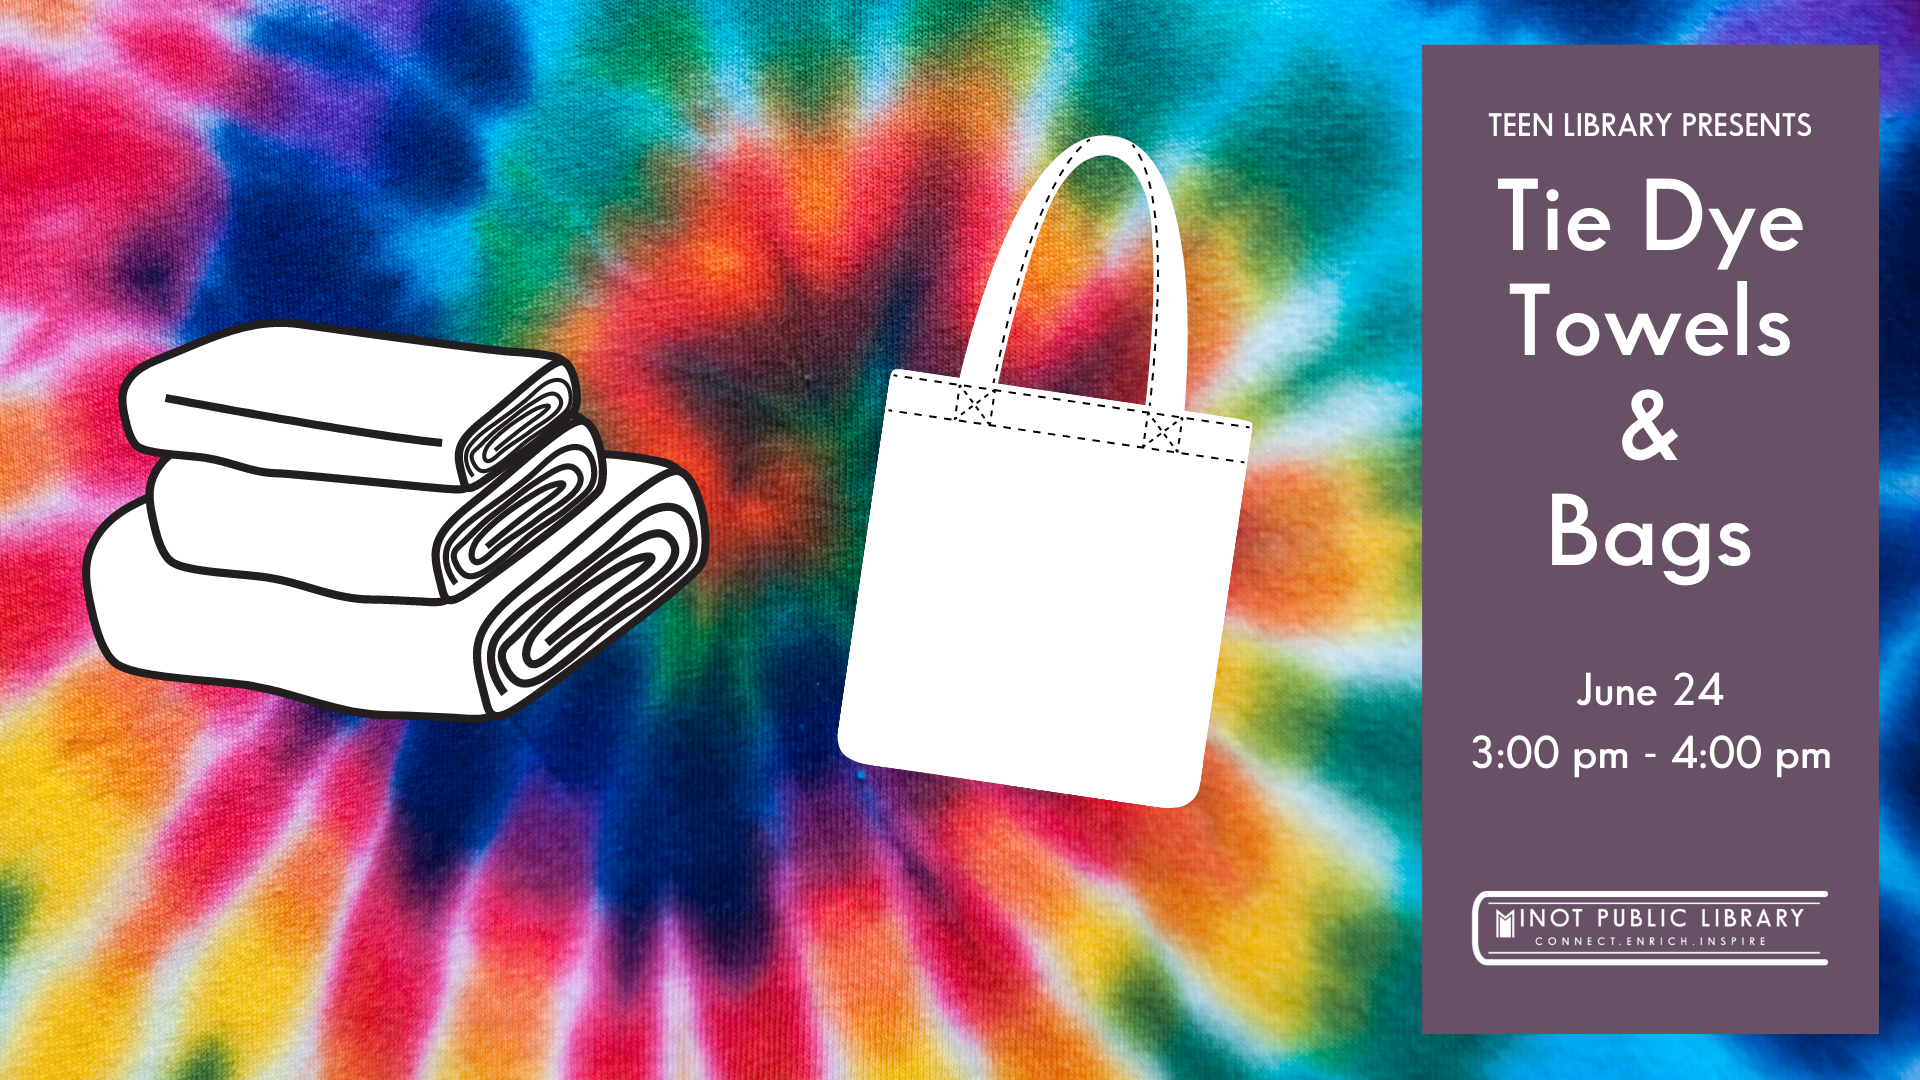 Tie Dye Towels and Bags